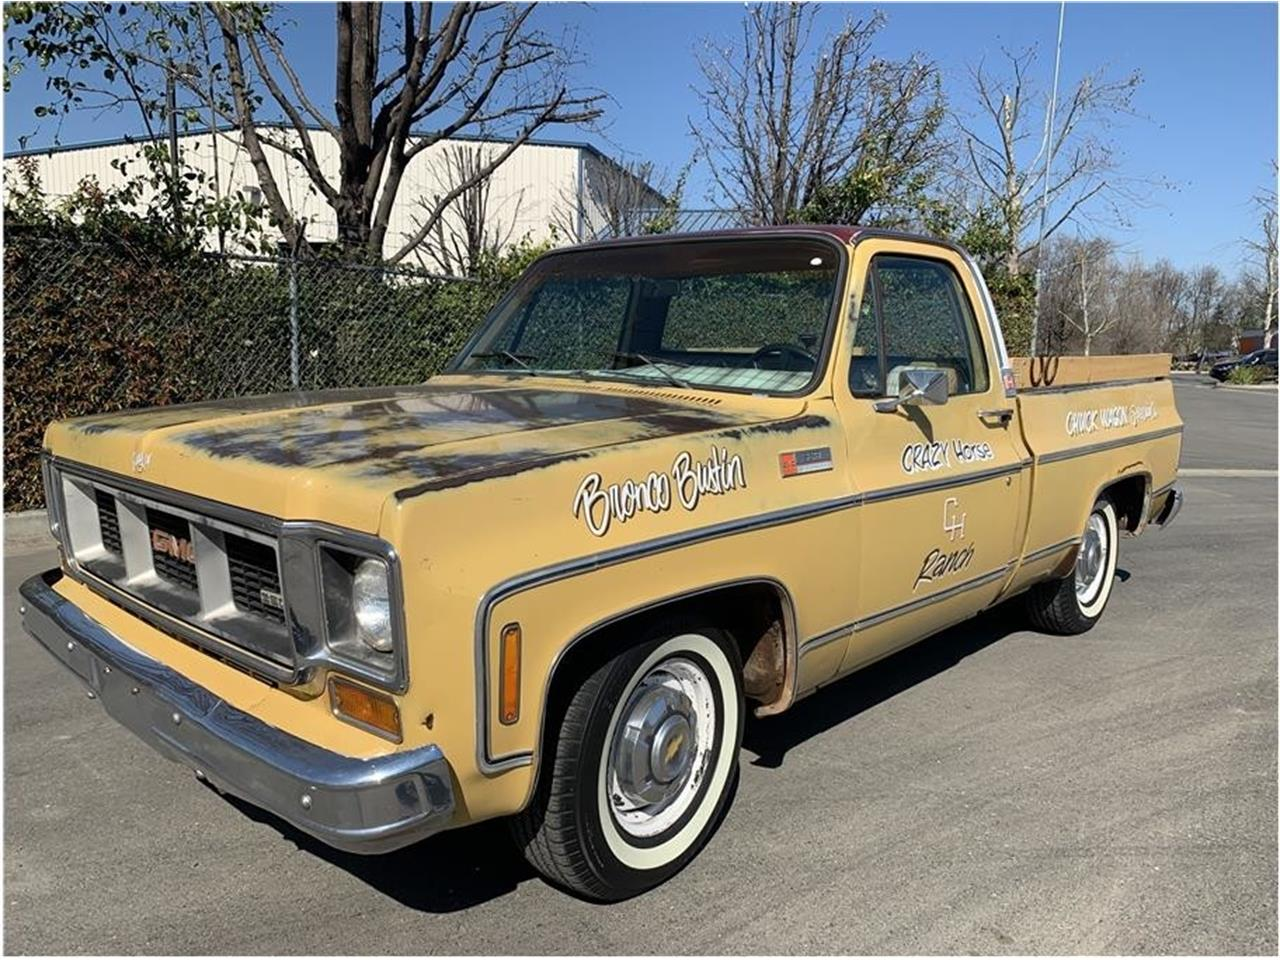 This Classic 1974 GMC Sierra Is Squarebody Greatness! Man The Things We'd Do With This Thing!